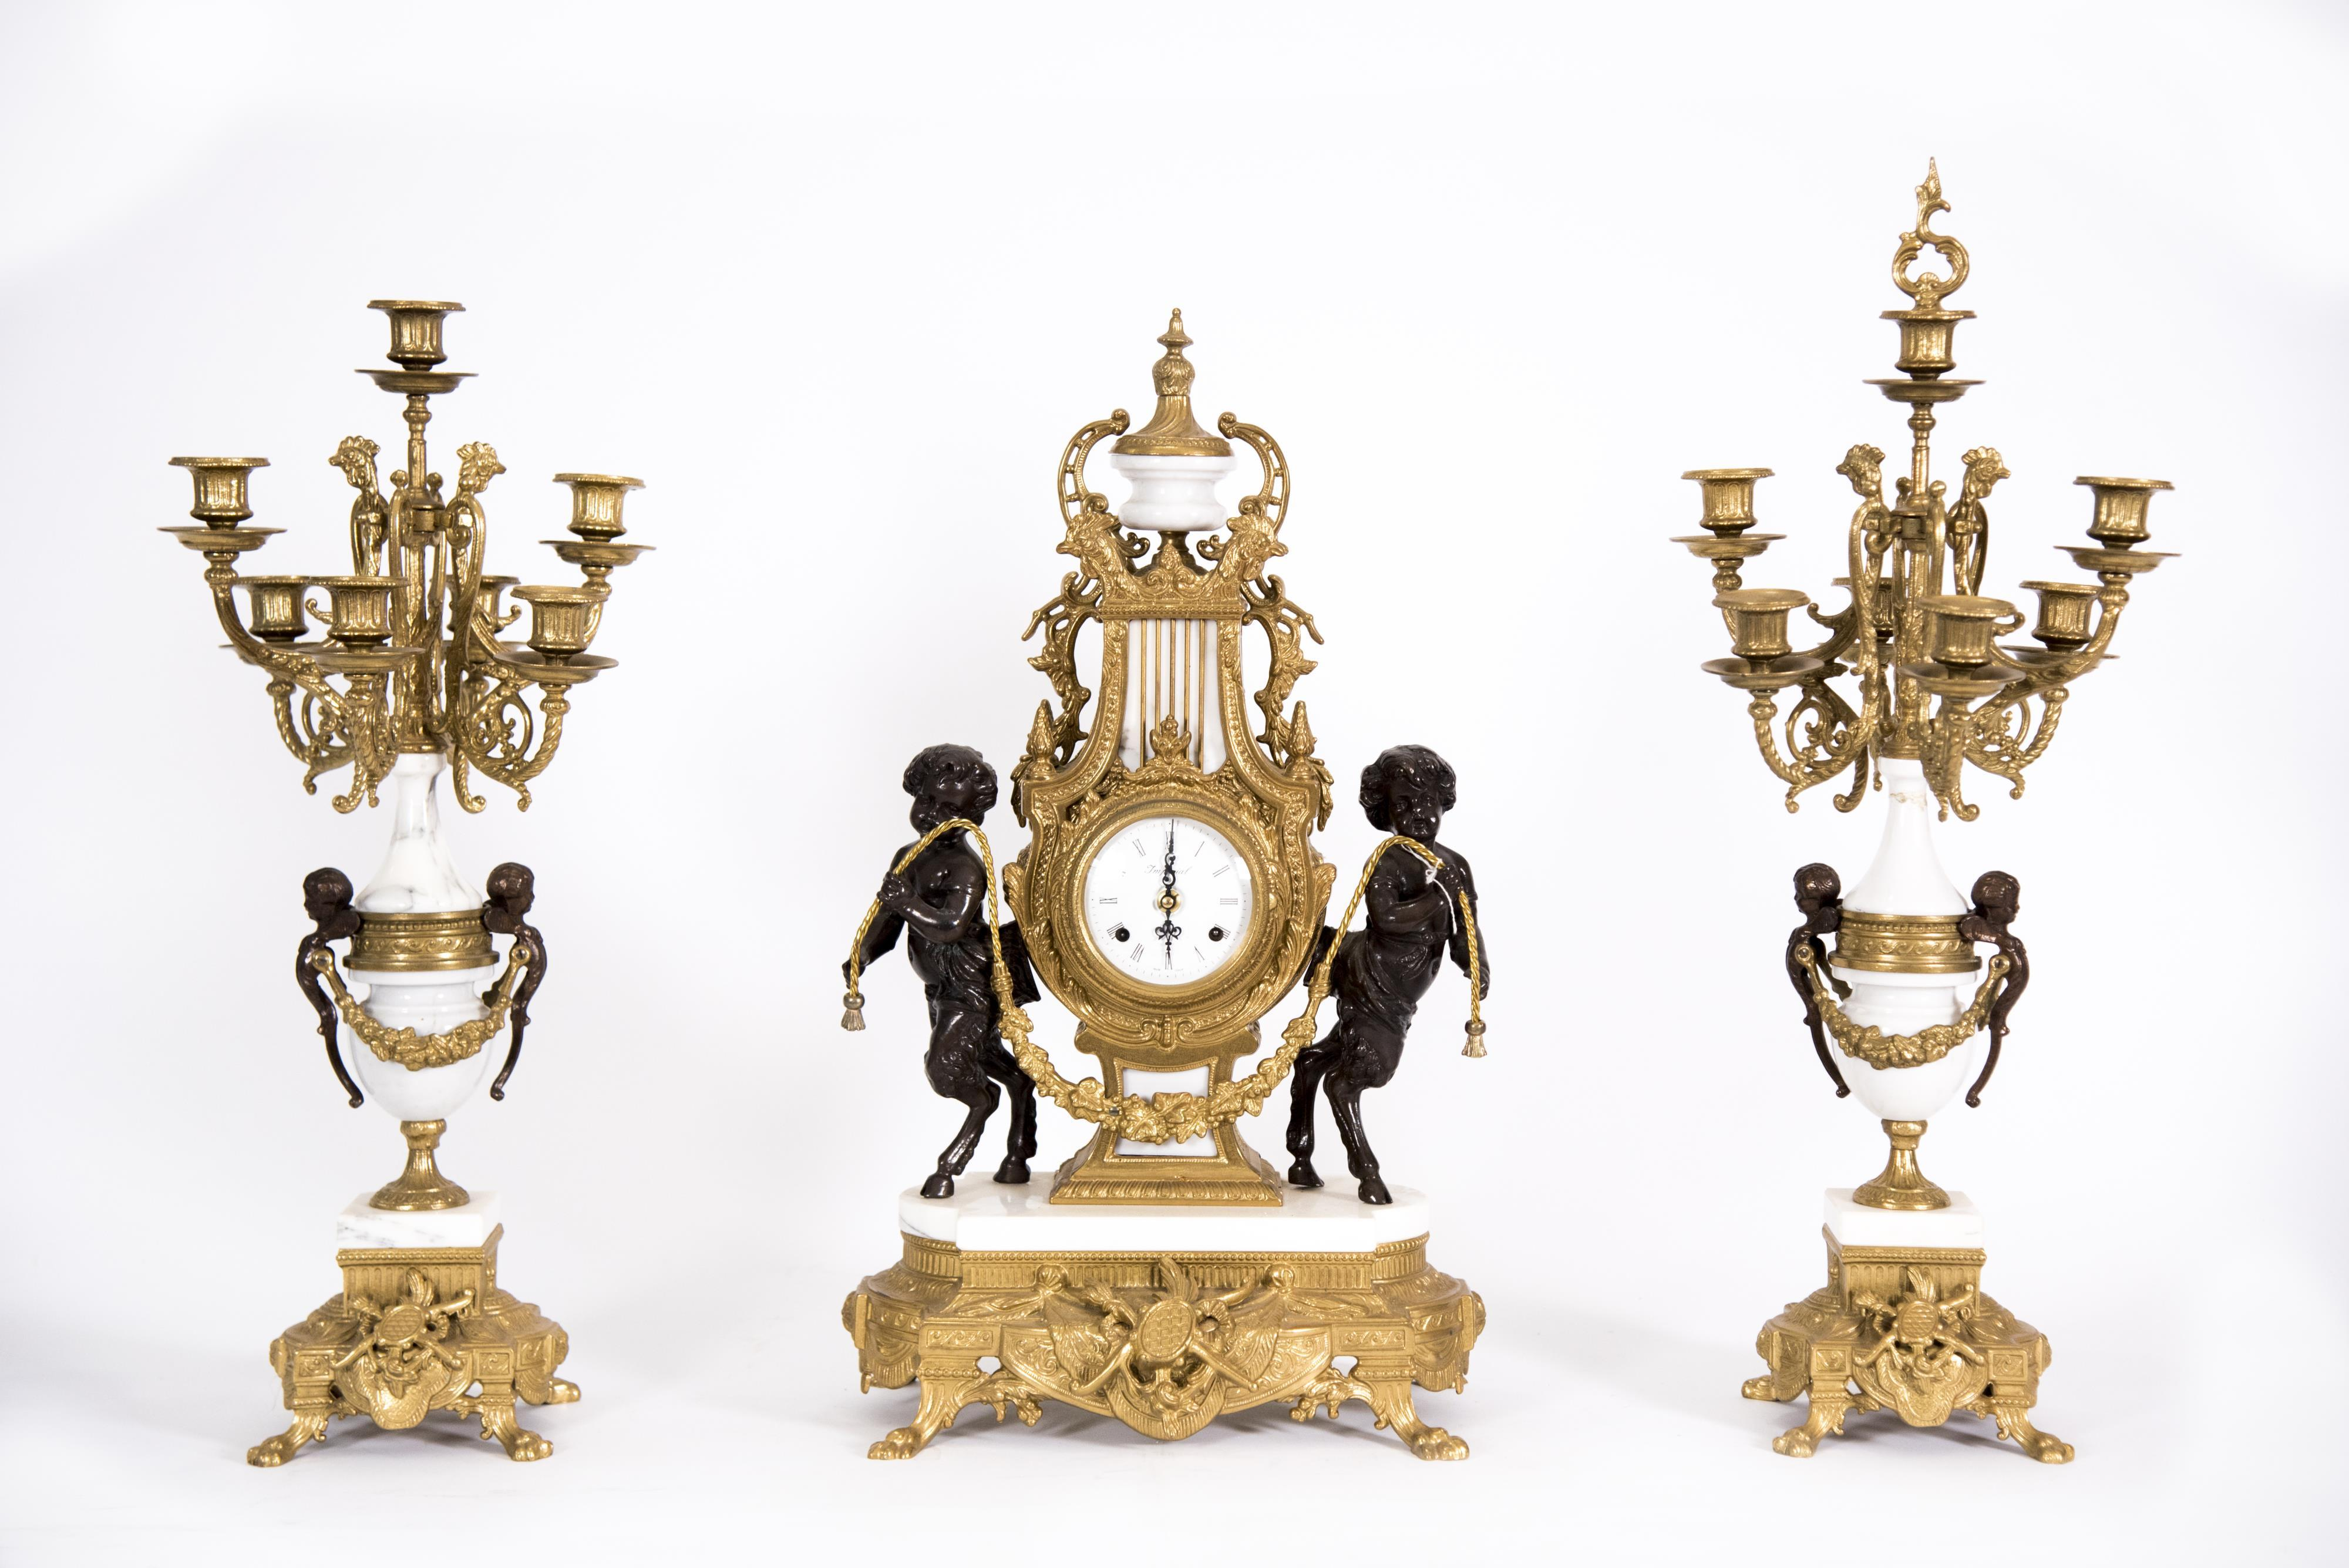 Large Brass and Bronze Clock Garniture set with Candelabra 24 inches in height